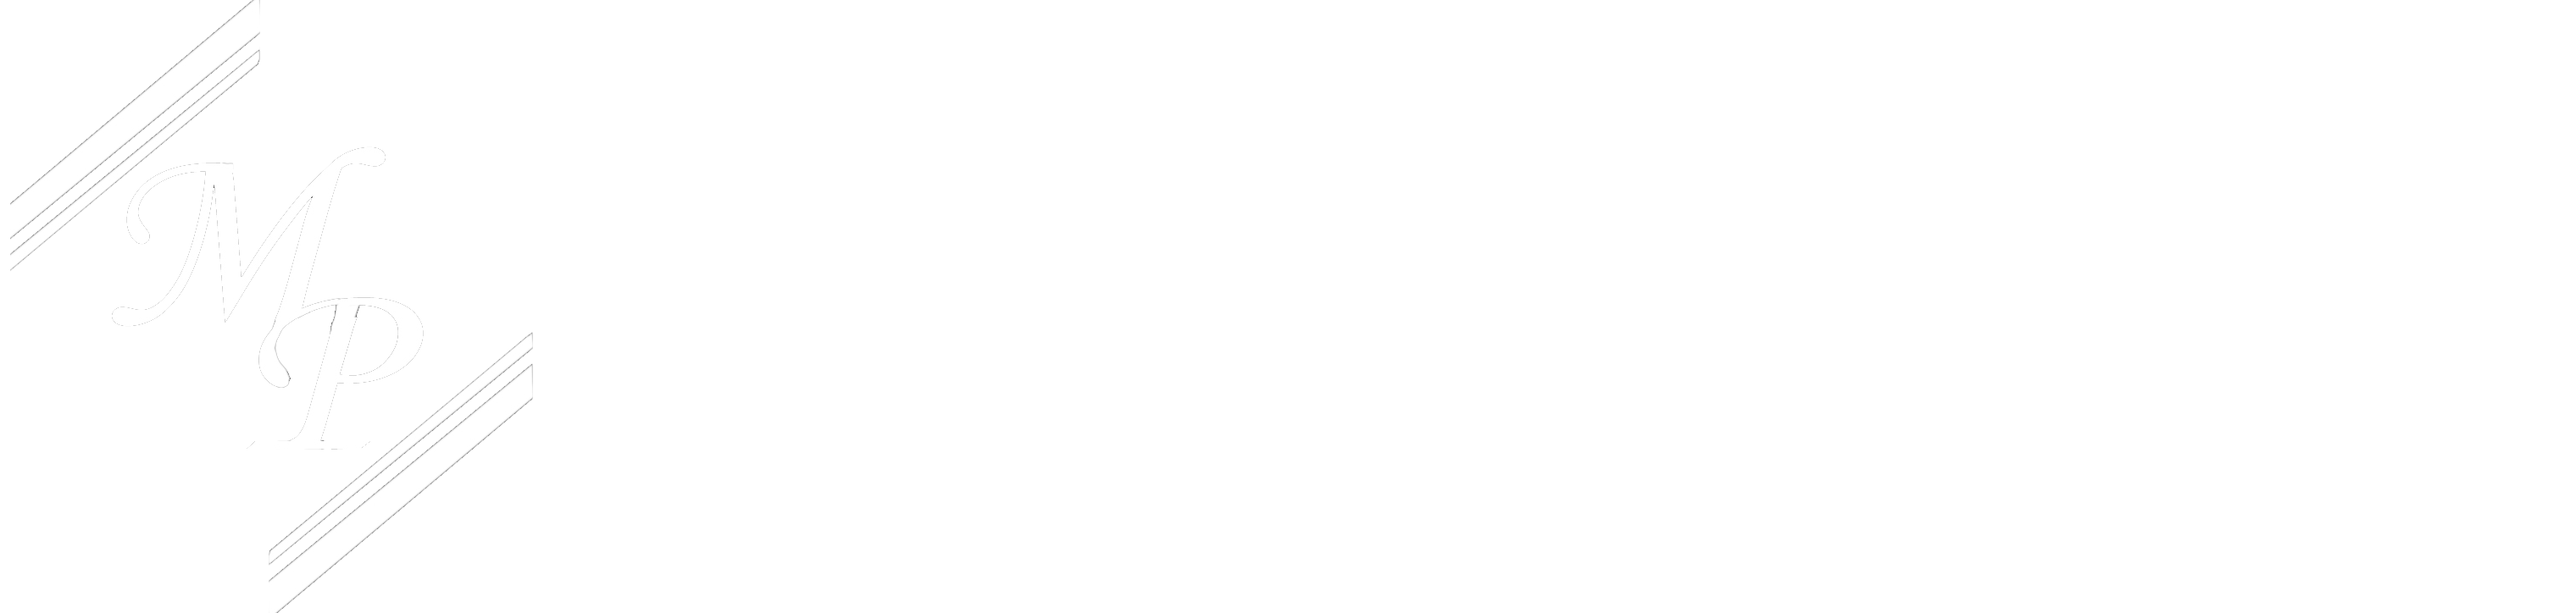 Mark Peter's Diamond Designs